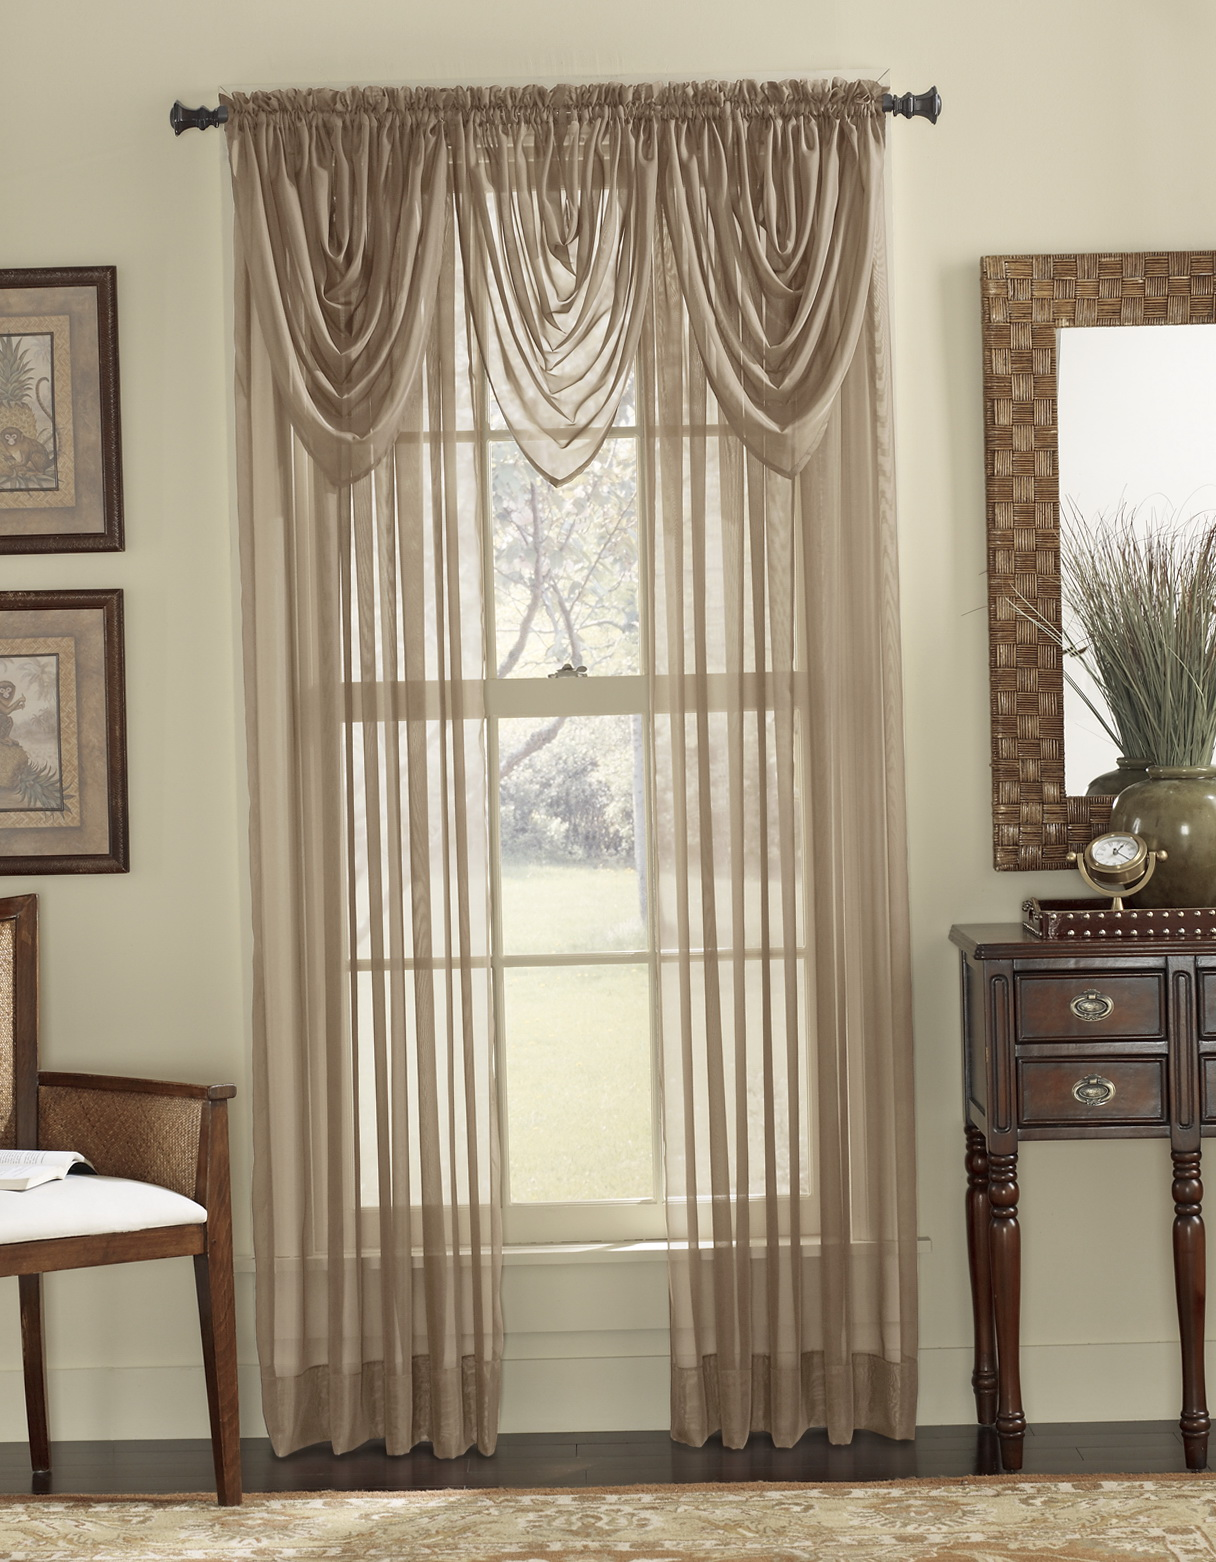 Sheer Curtains With Valance Home Design Ideas